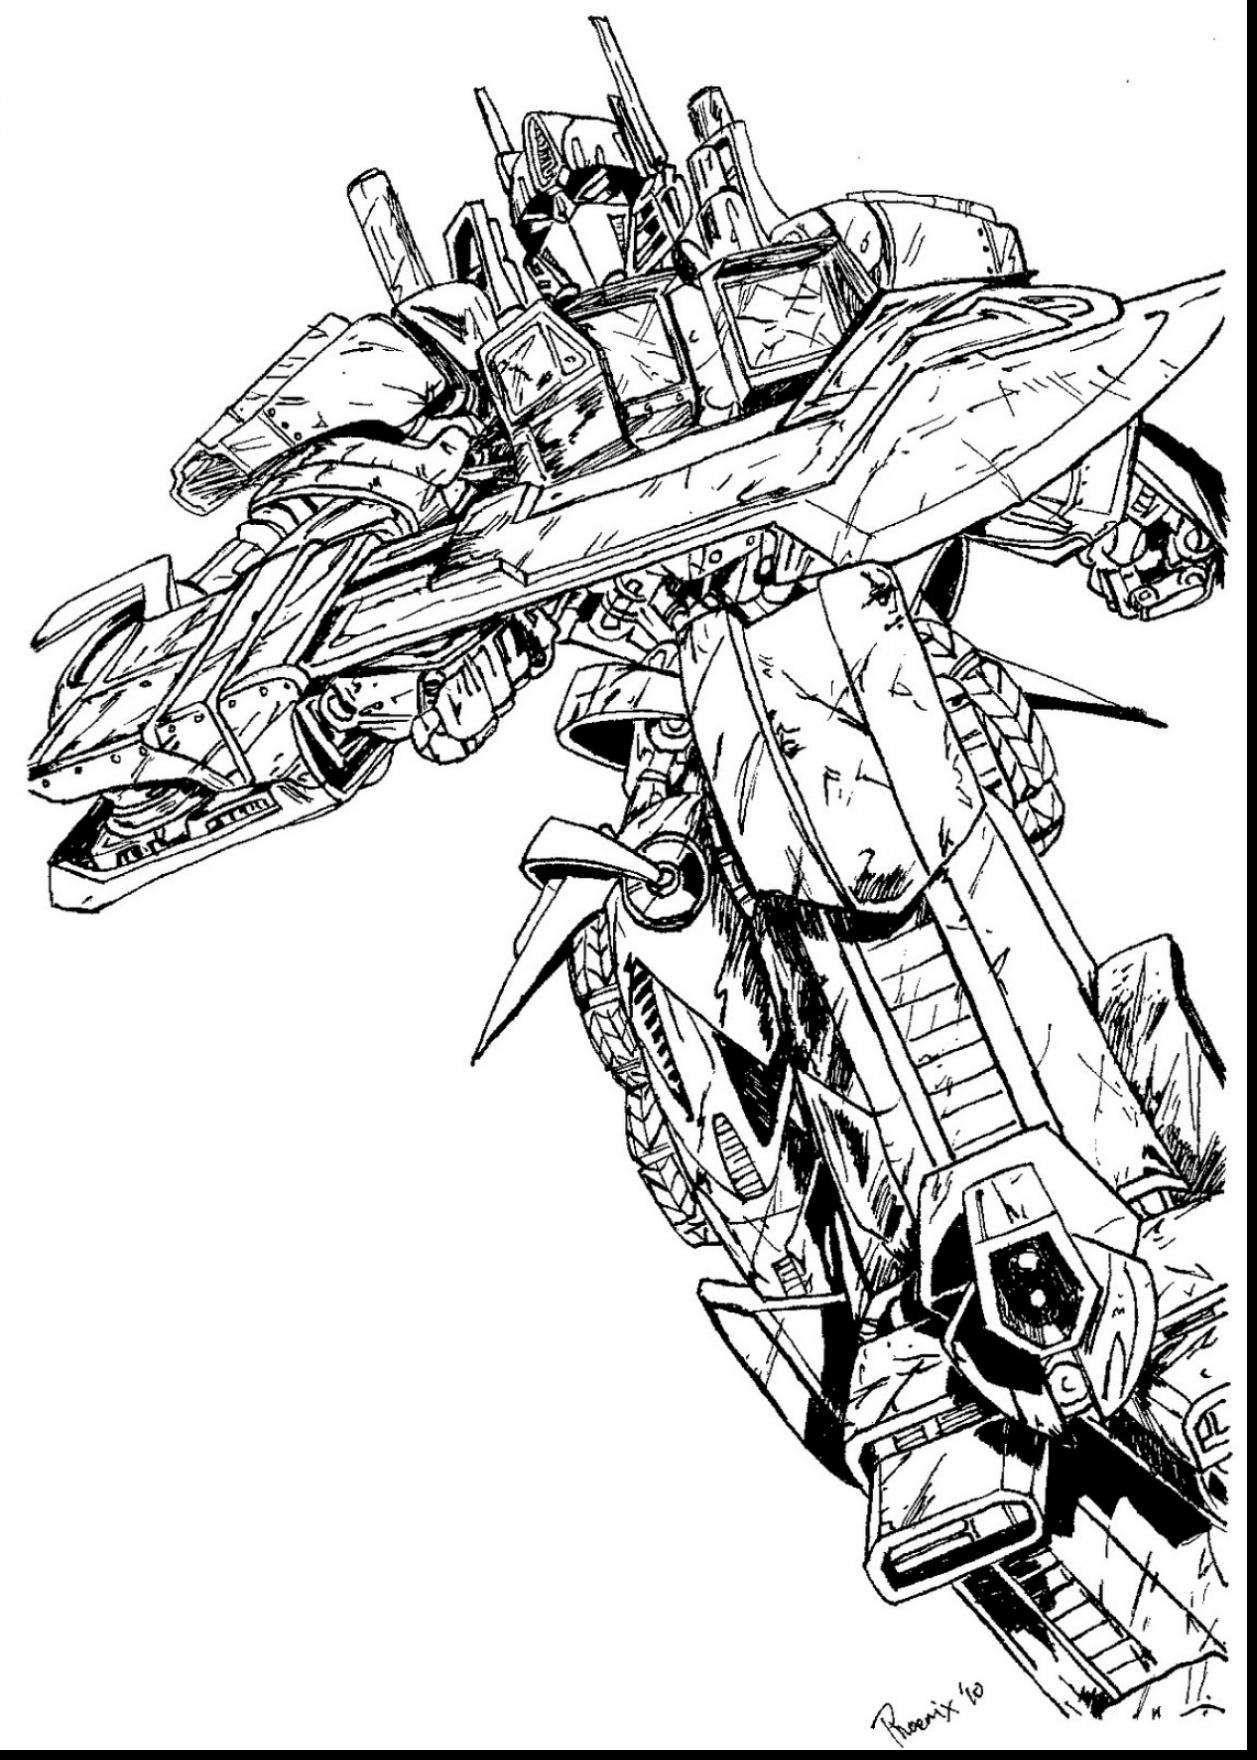 optimus prime coloring pages printable | Optimus Prime Coloring Page at GetDrawings.com | Free for ...